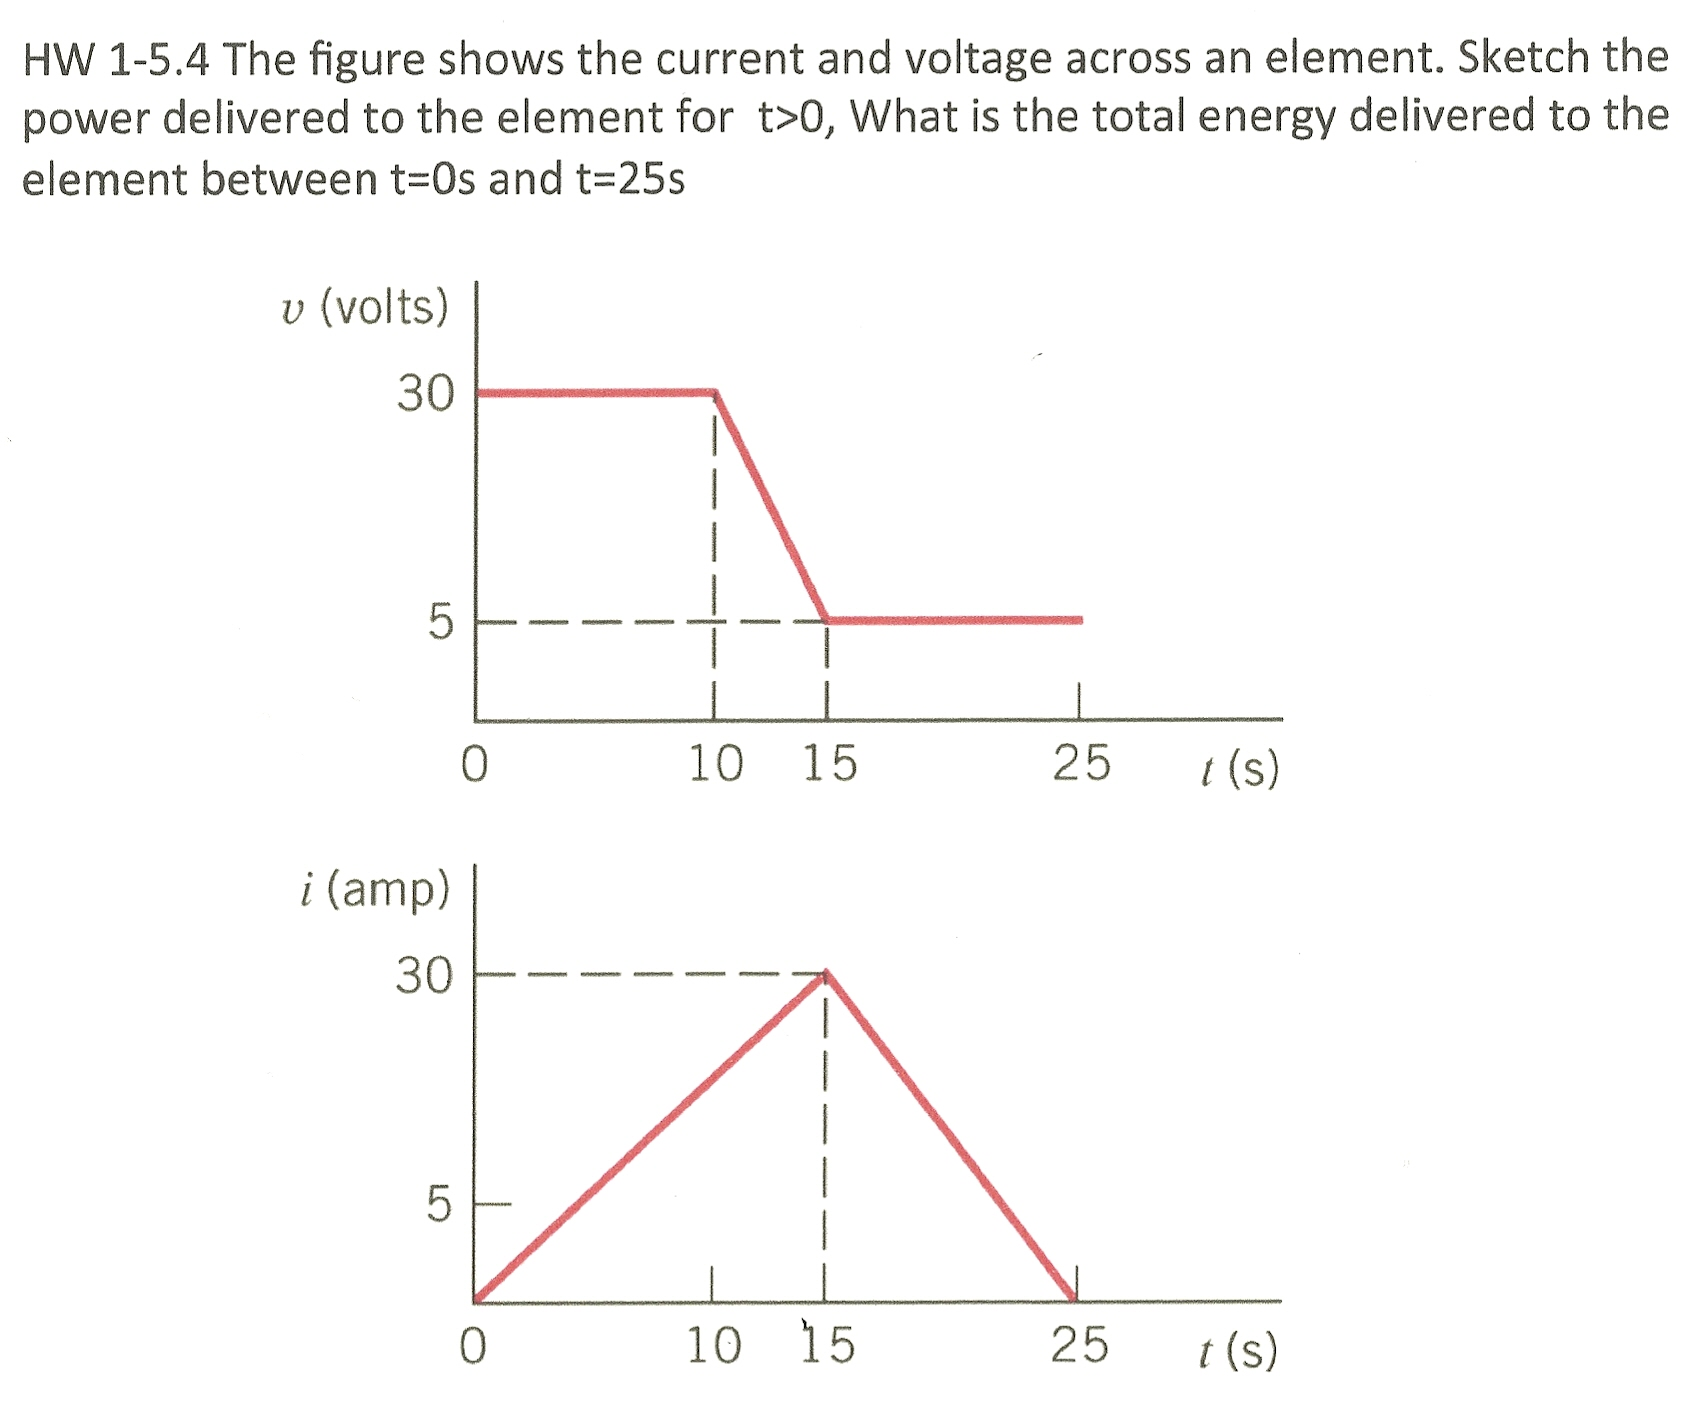 HW 1-5.4 The figure shows the current and voltage